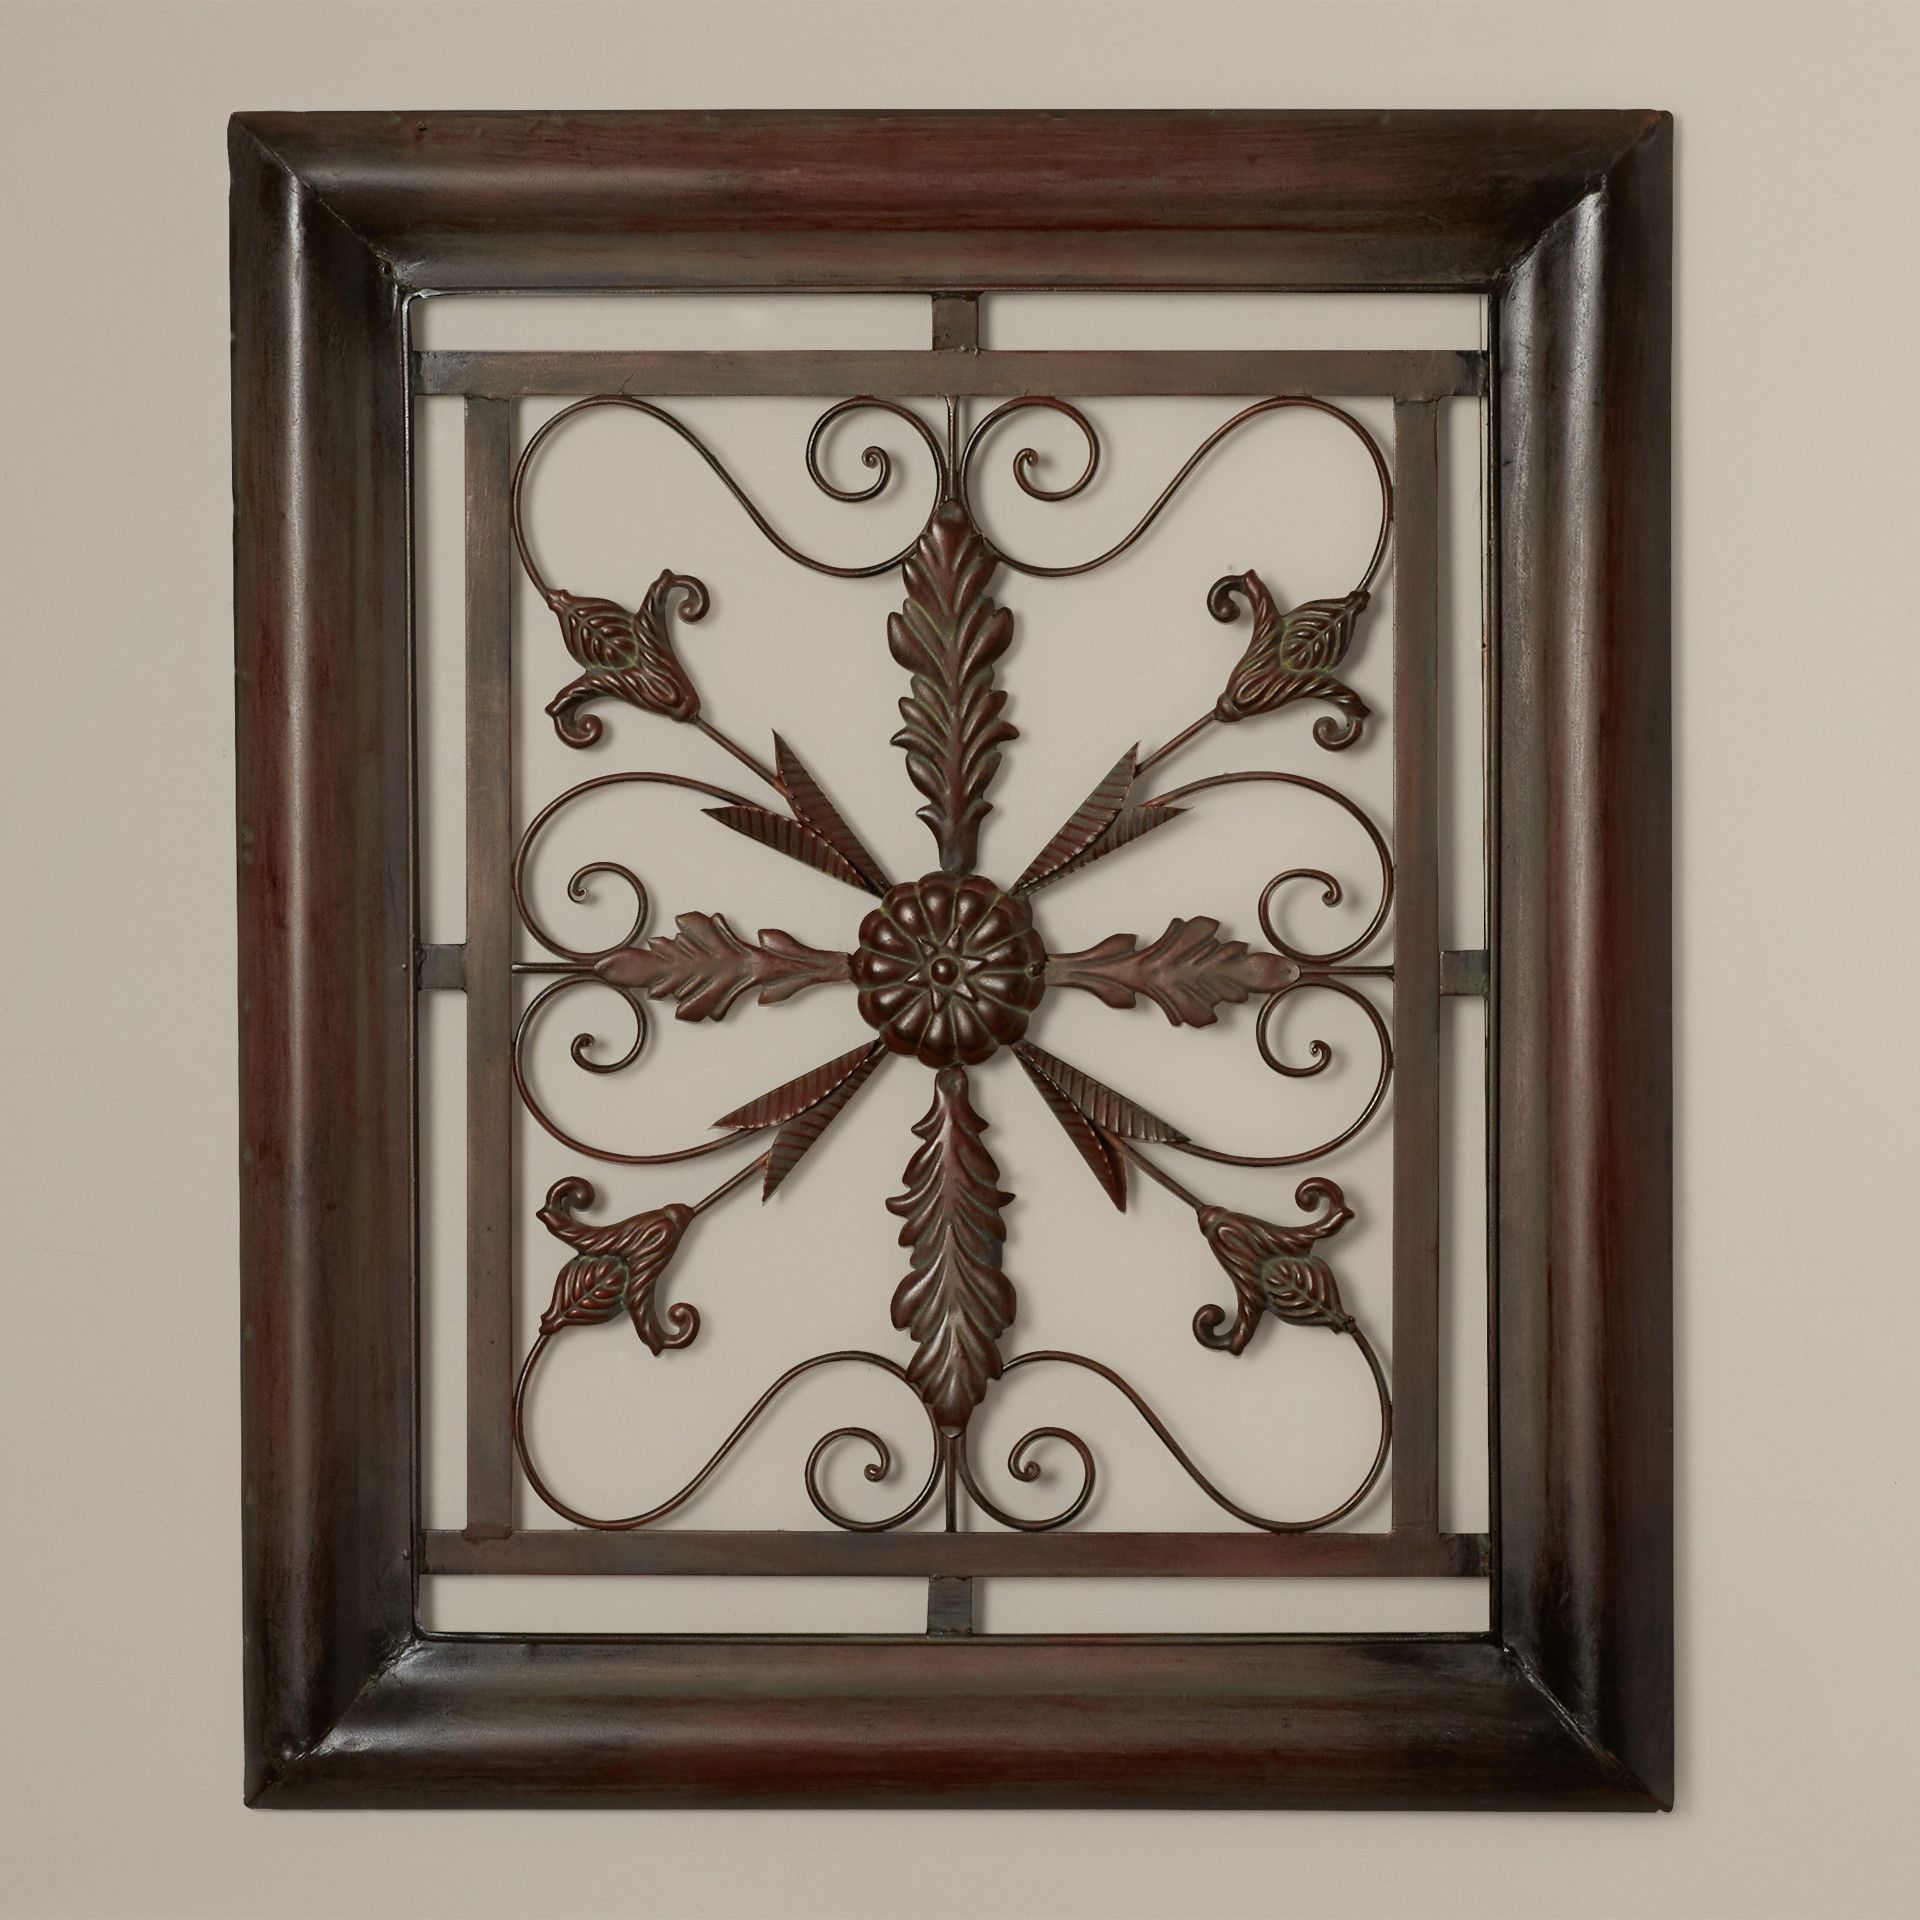 Charlton Home® Bayliss Square Scroll Wall Decor | Tuscan Intended For Wall Decor By Charlton Home (View 8 of 30)